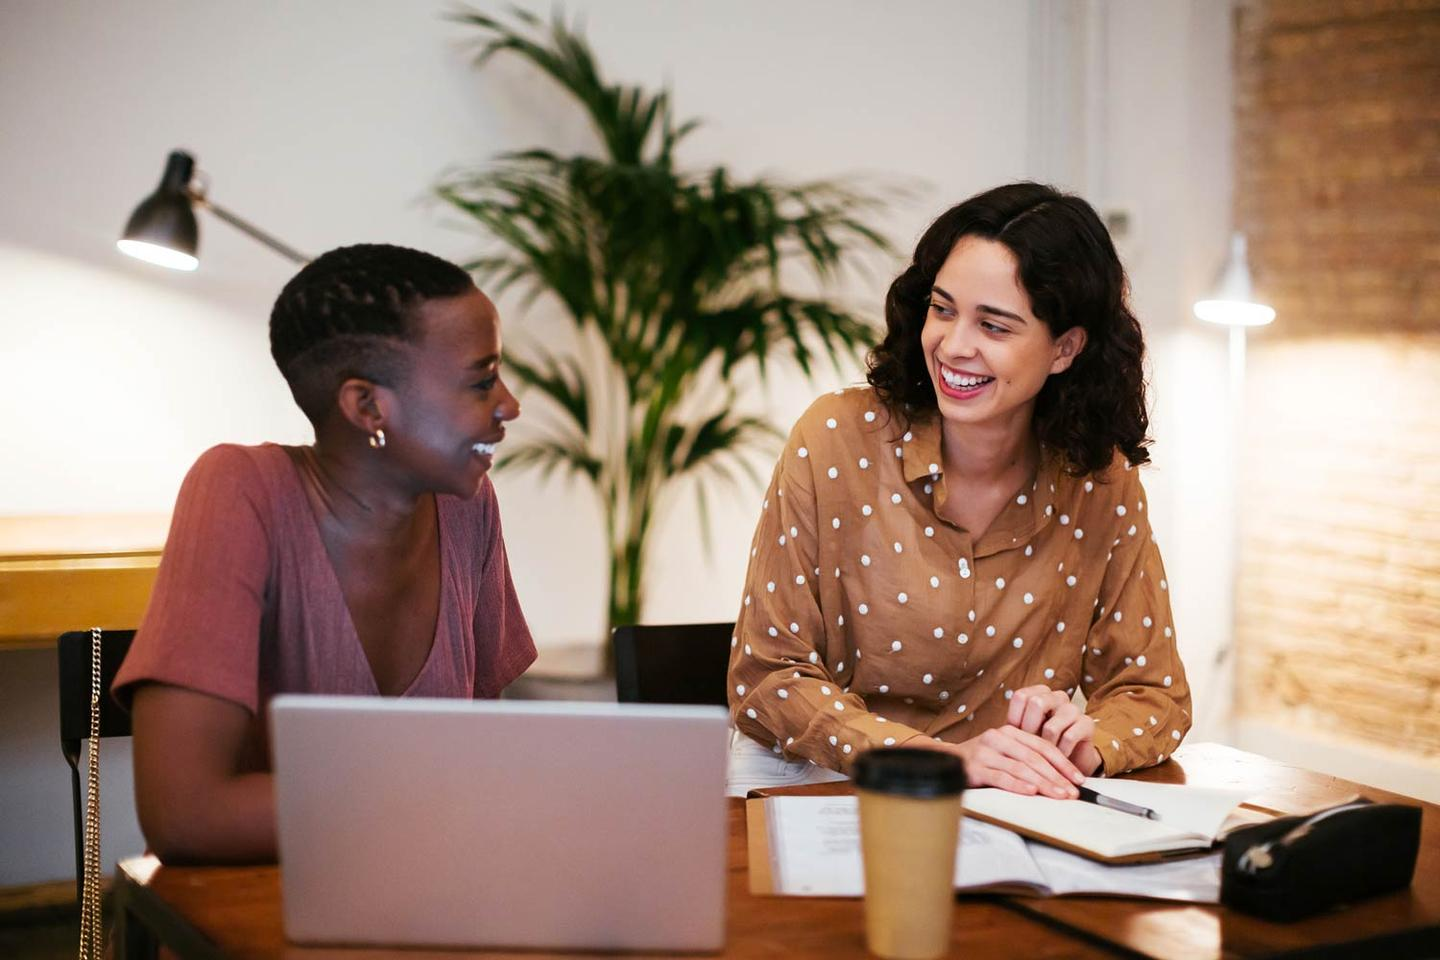 Two women smiling at each other with laptop